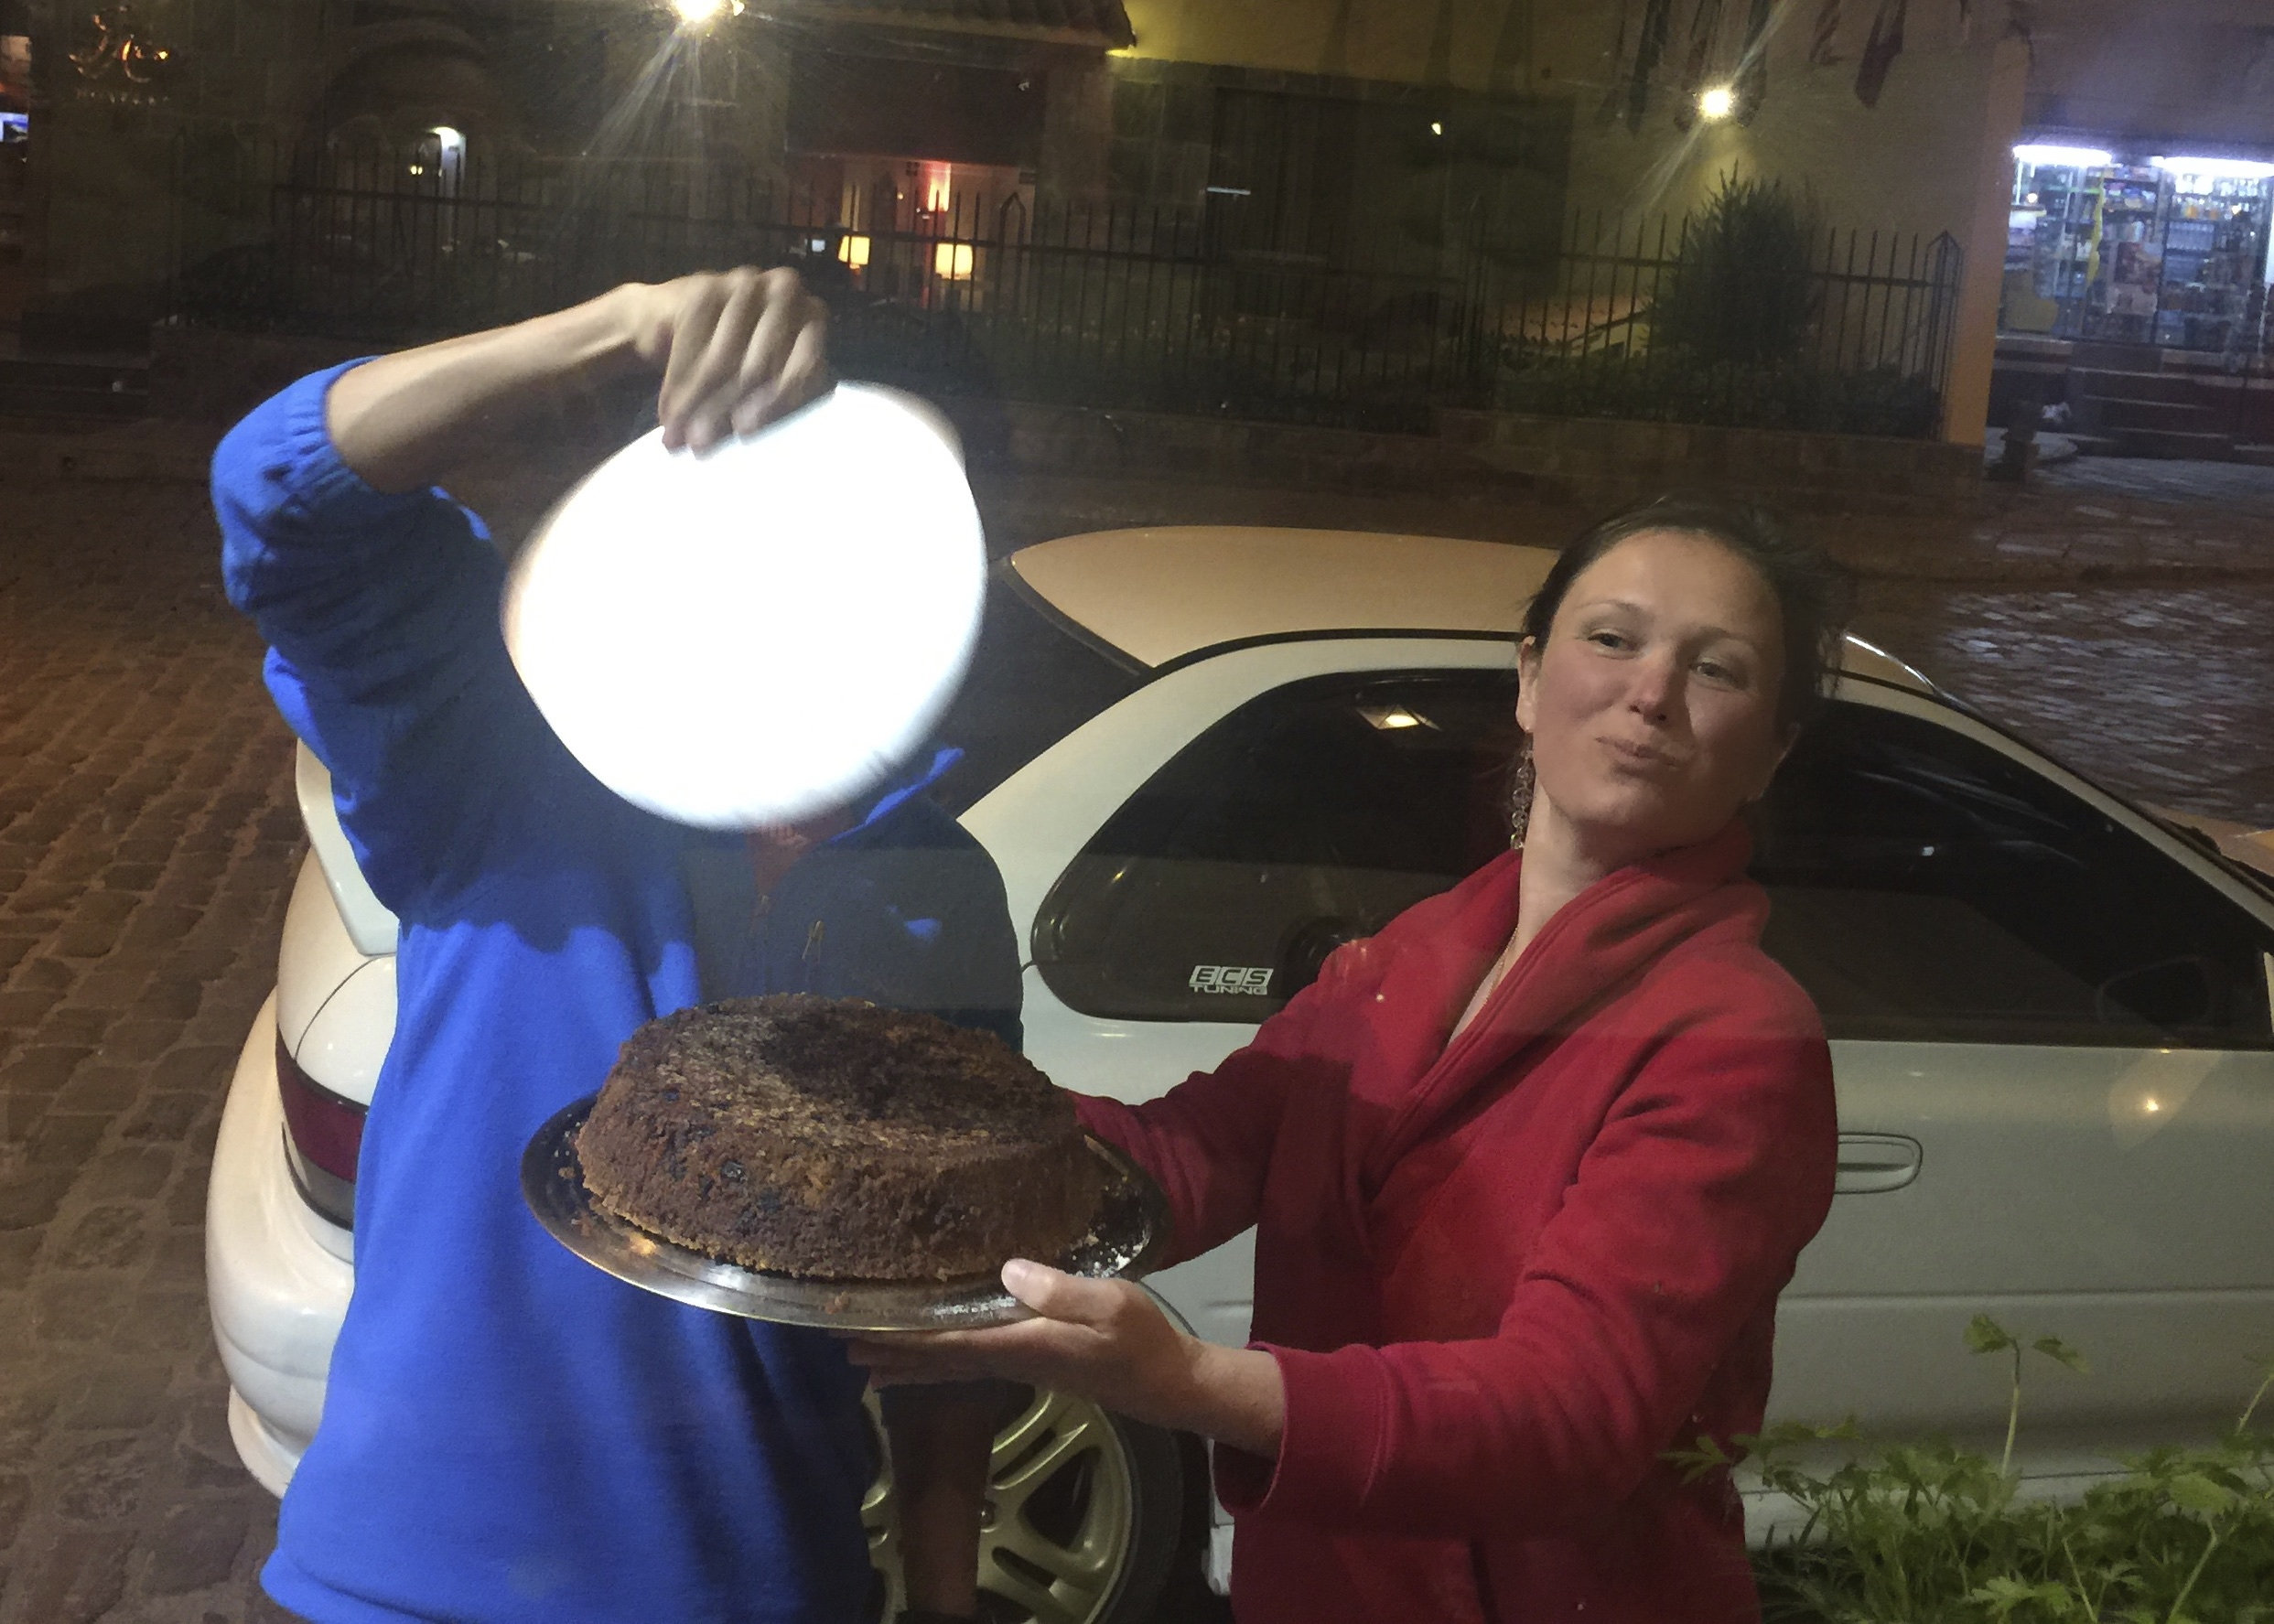 Peter & I cooling the cake outside the restaurant because we were impatient to ice the cake, and then eat it.